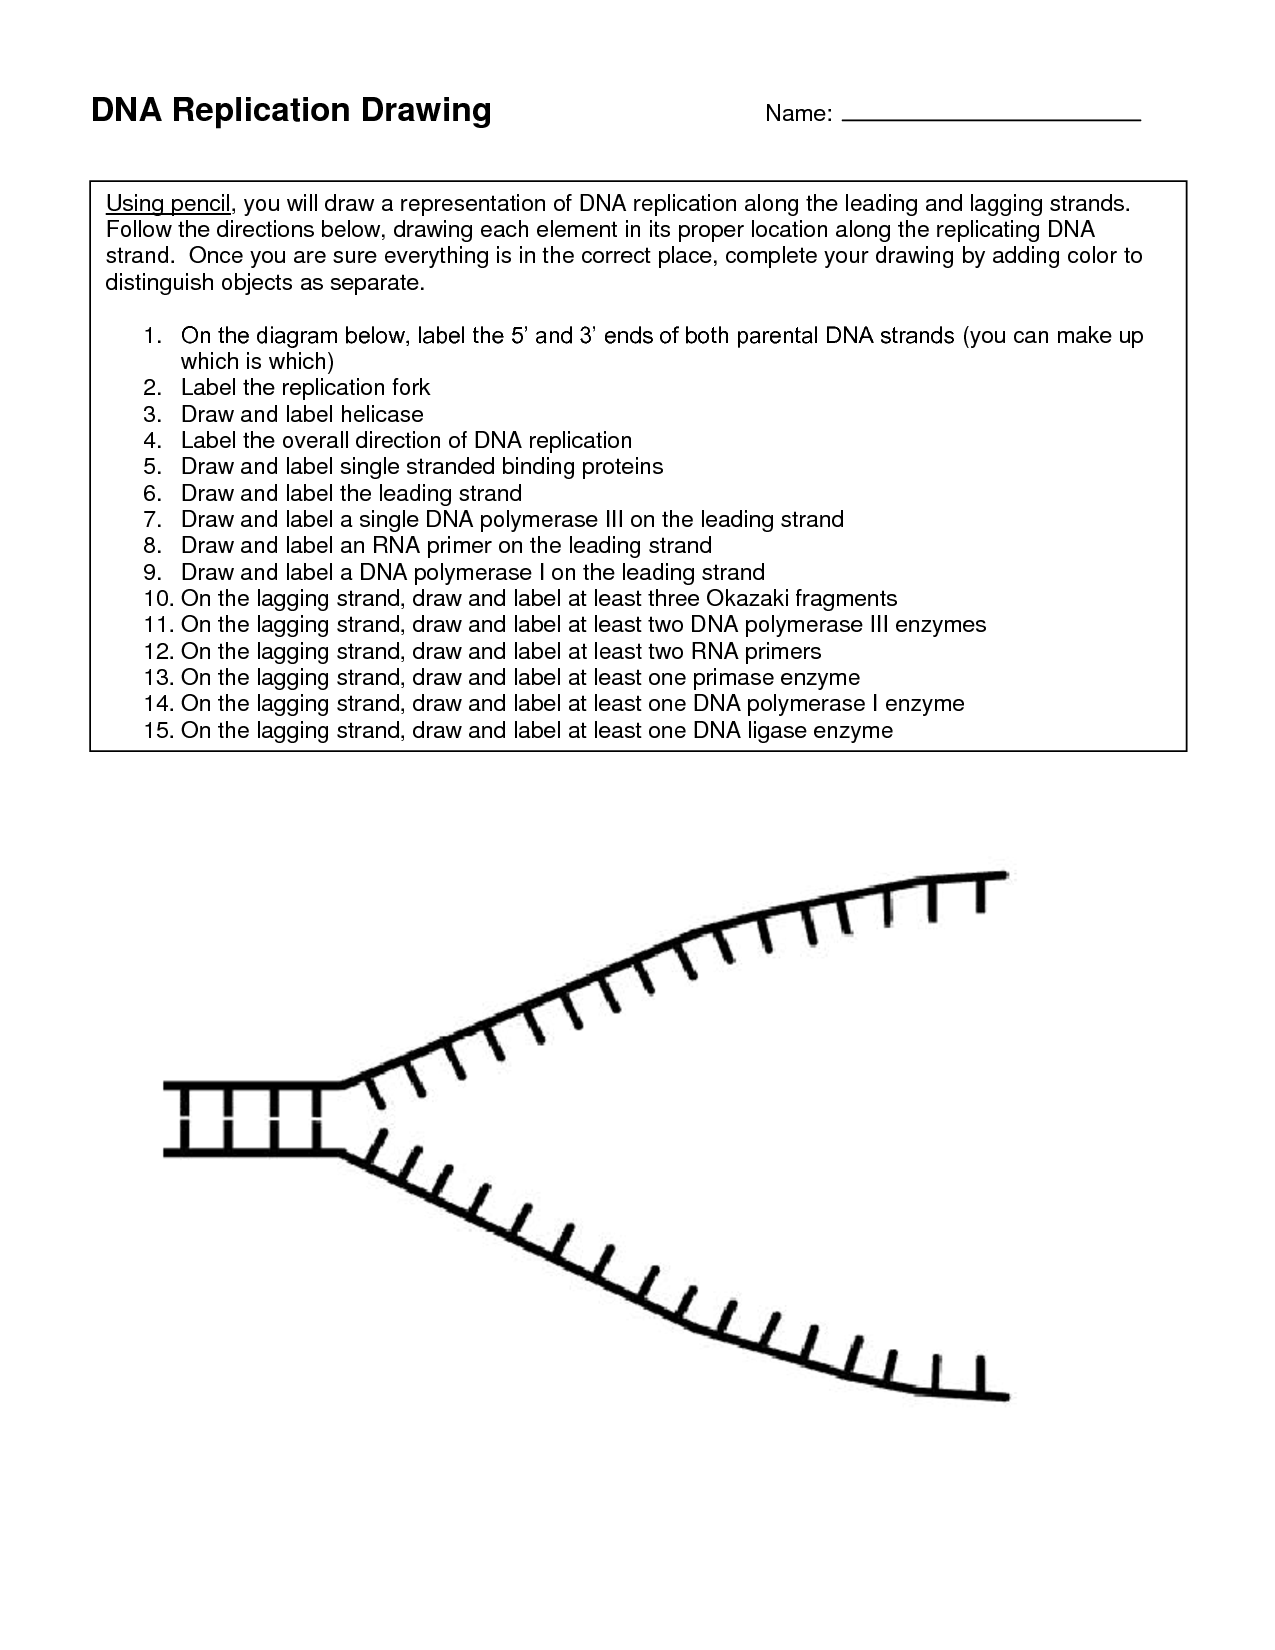 Worksheets Dna Replication Worksheet Answers dna replication worksheet answers answer key images